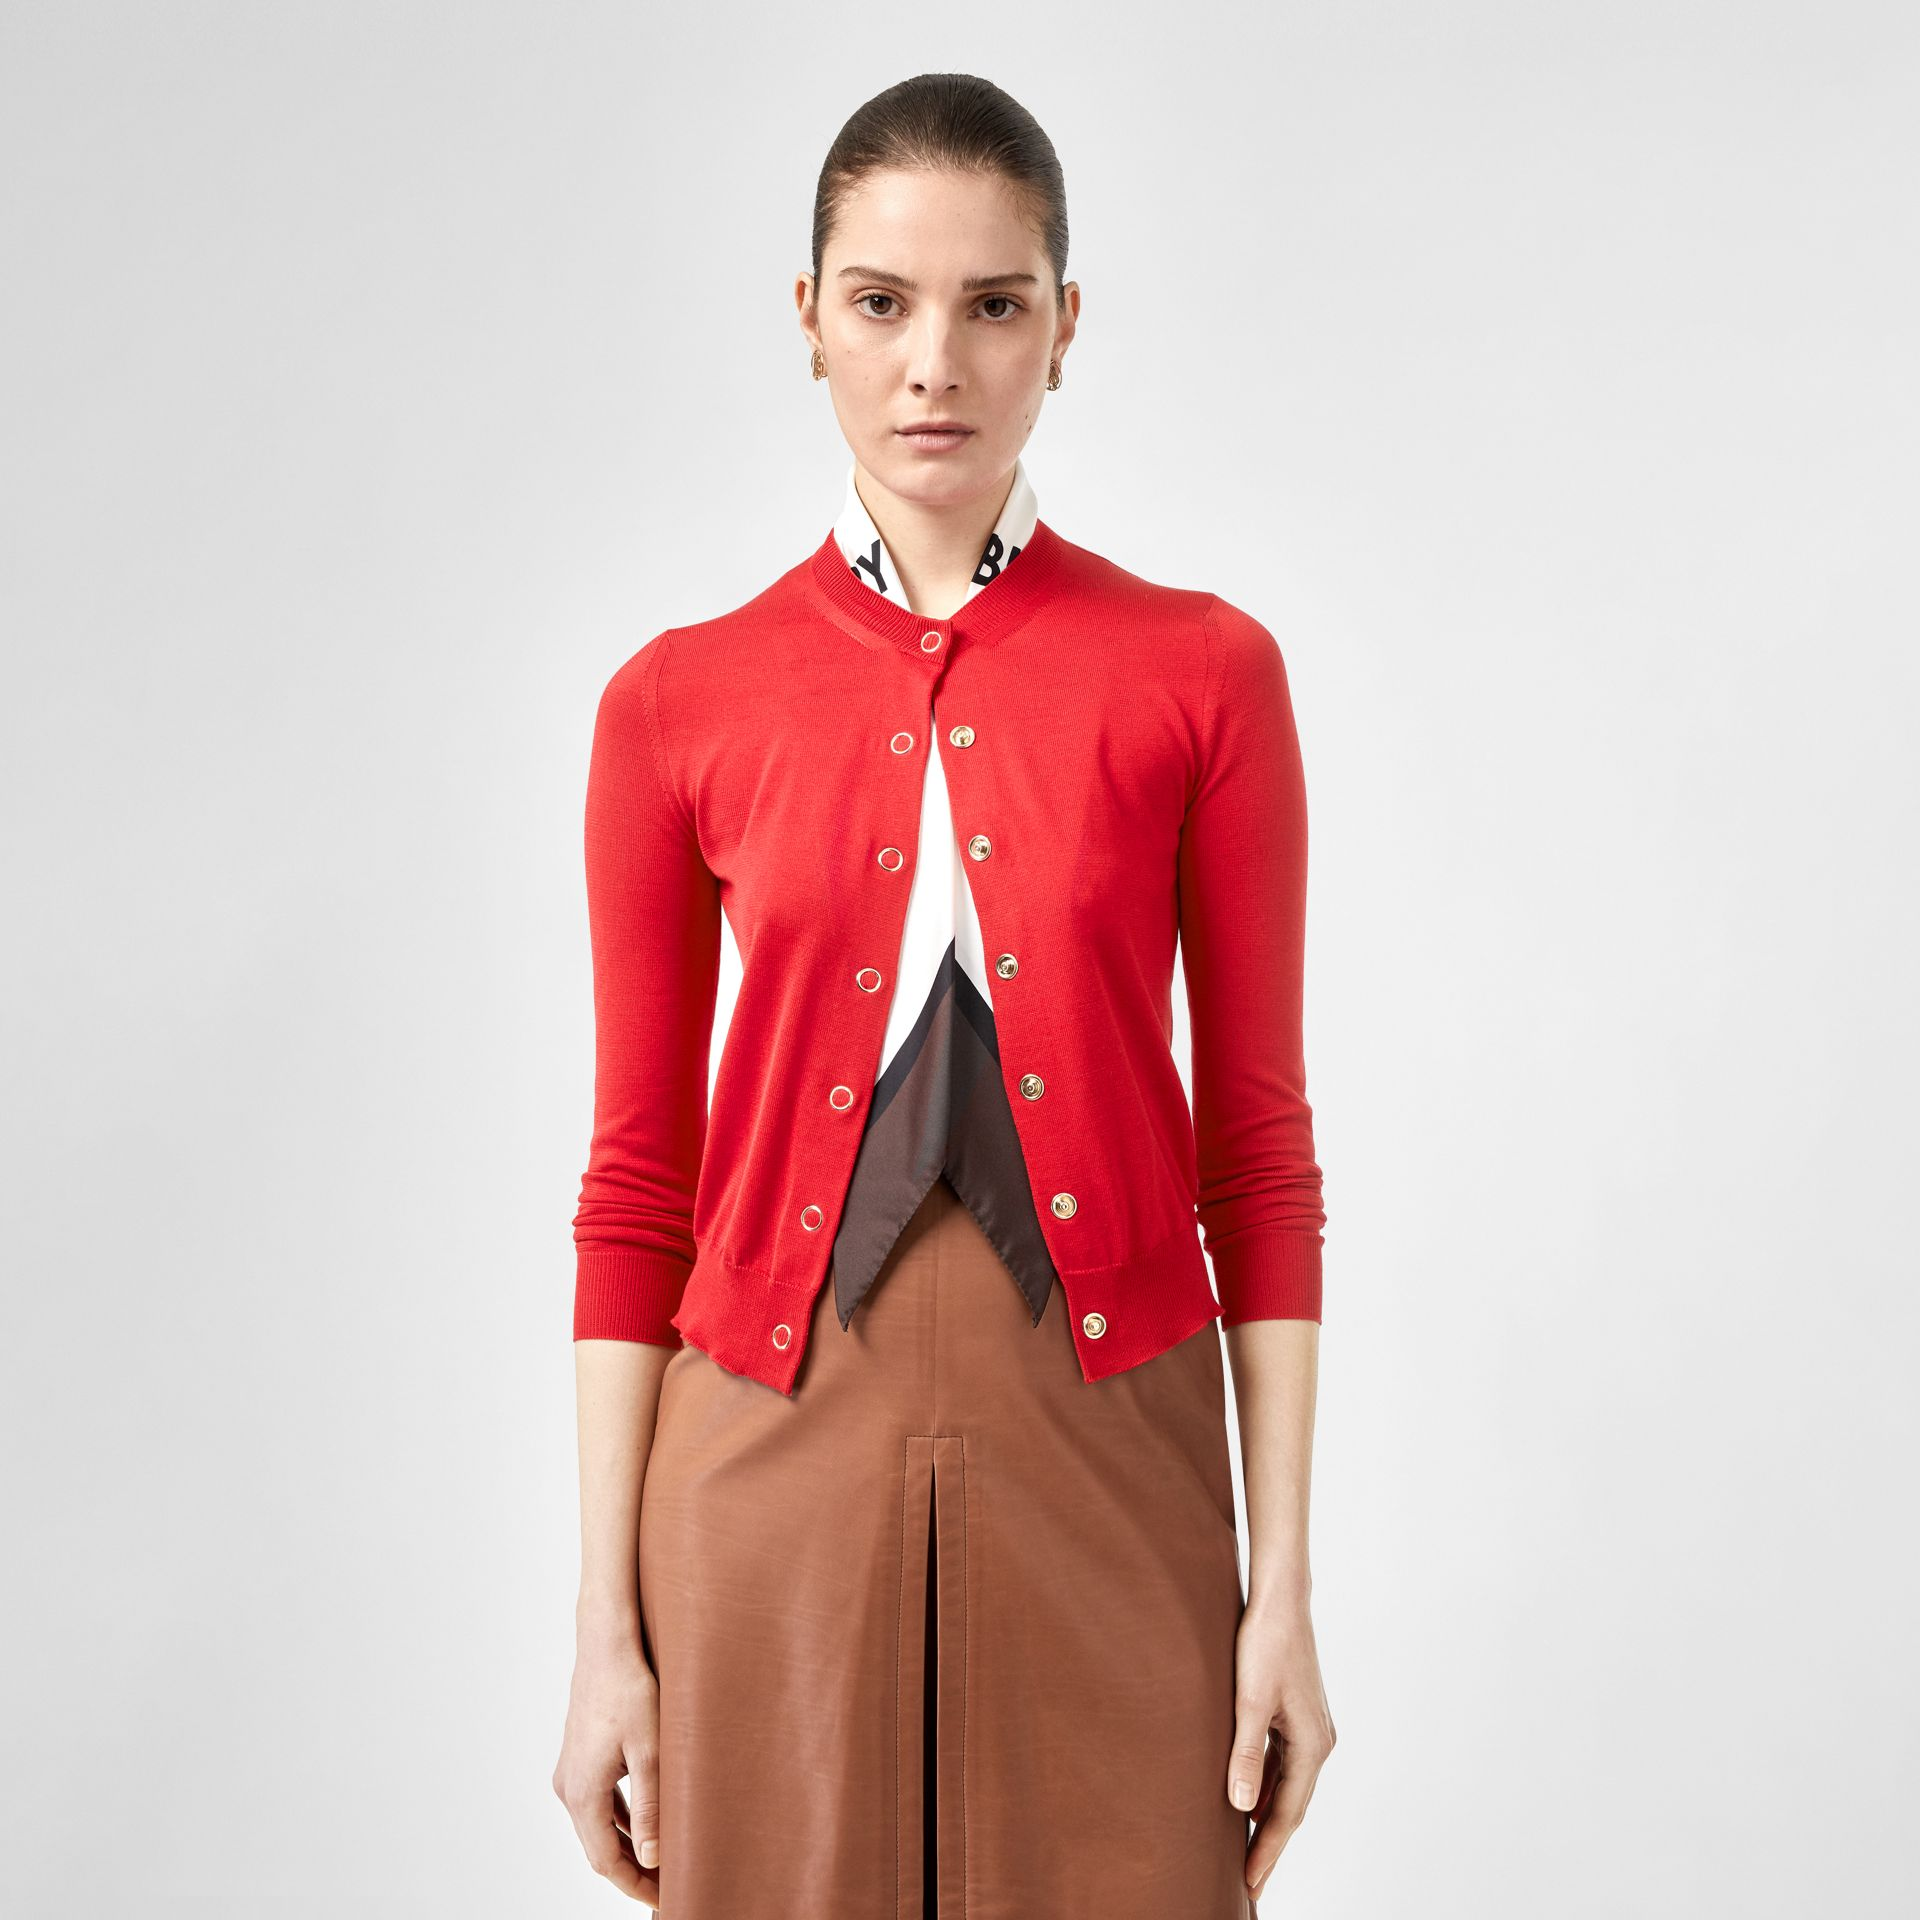 Scarf Detail Silk Cardigan in Bright Red - Women | Burberry Hong Kong S.A.R - gallery image 4